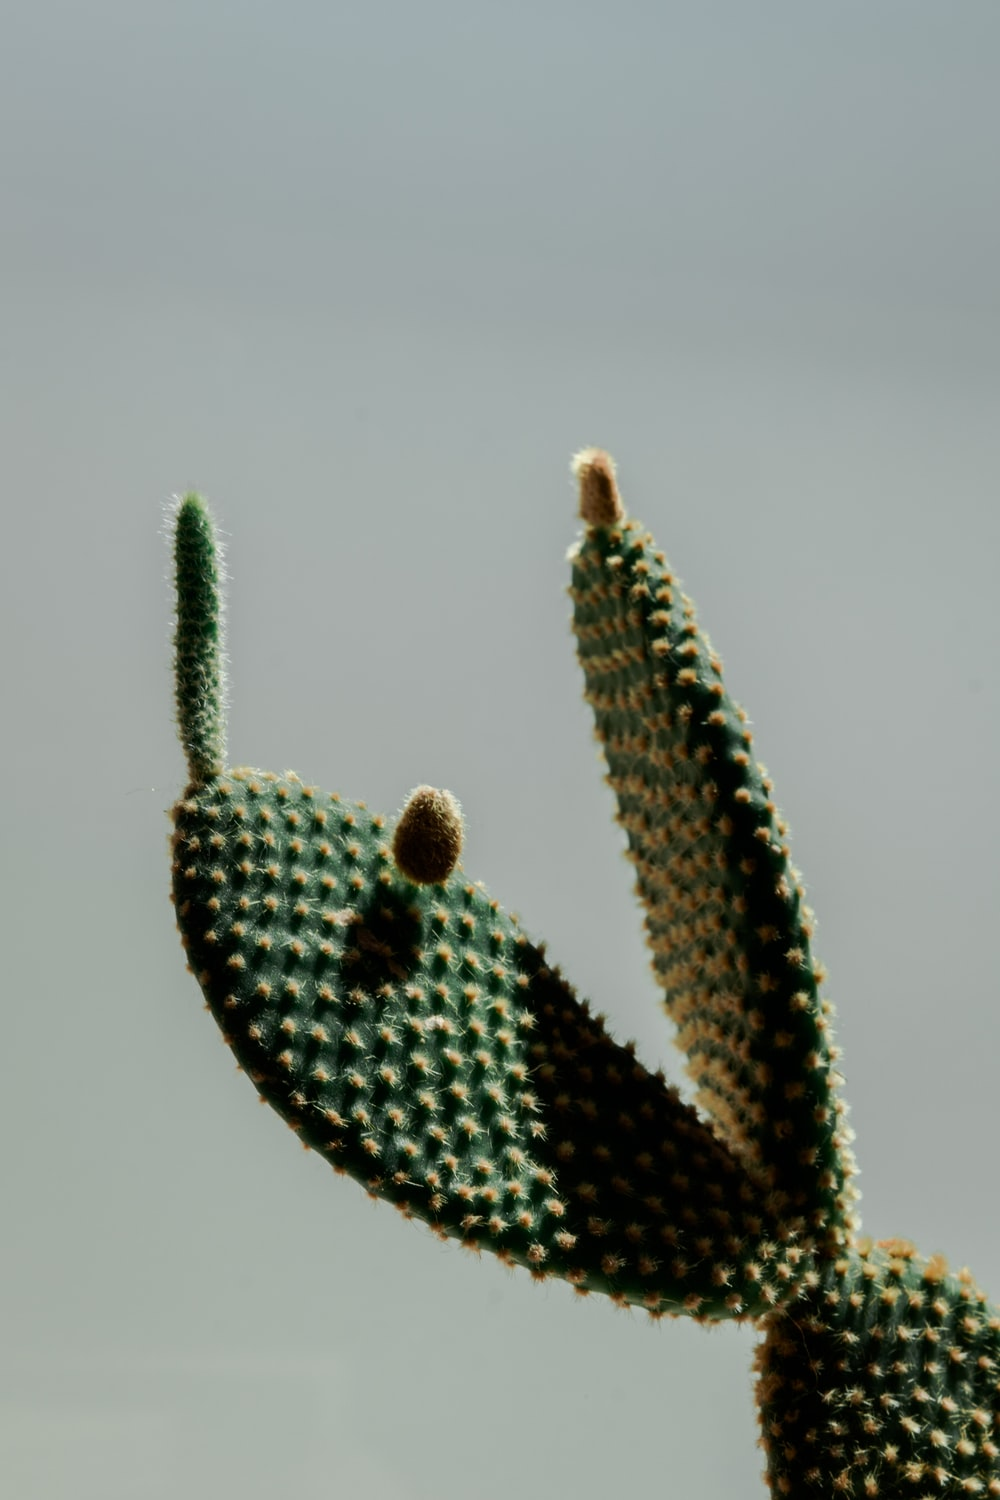 green and brown cactus plant